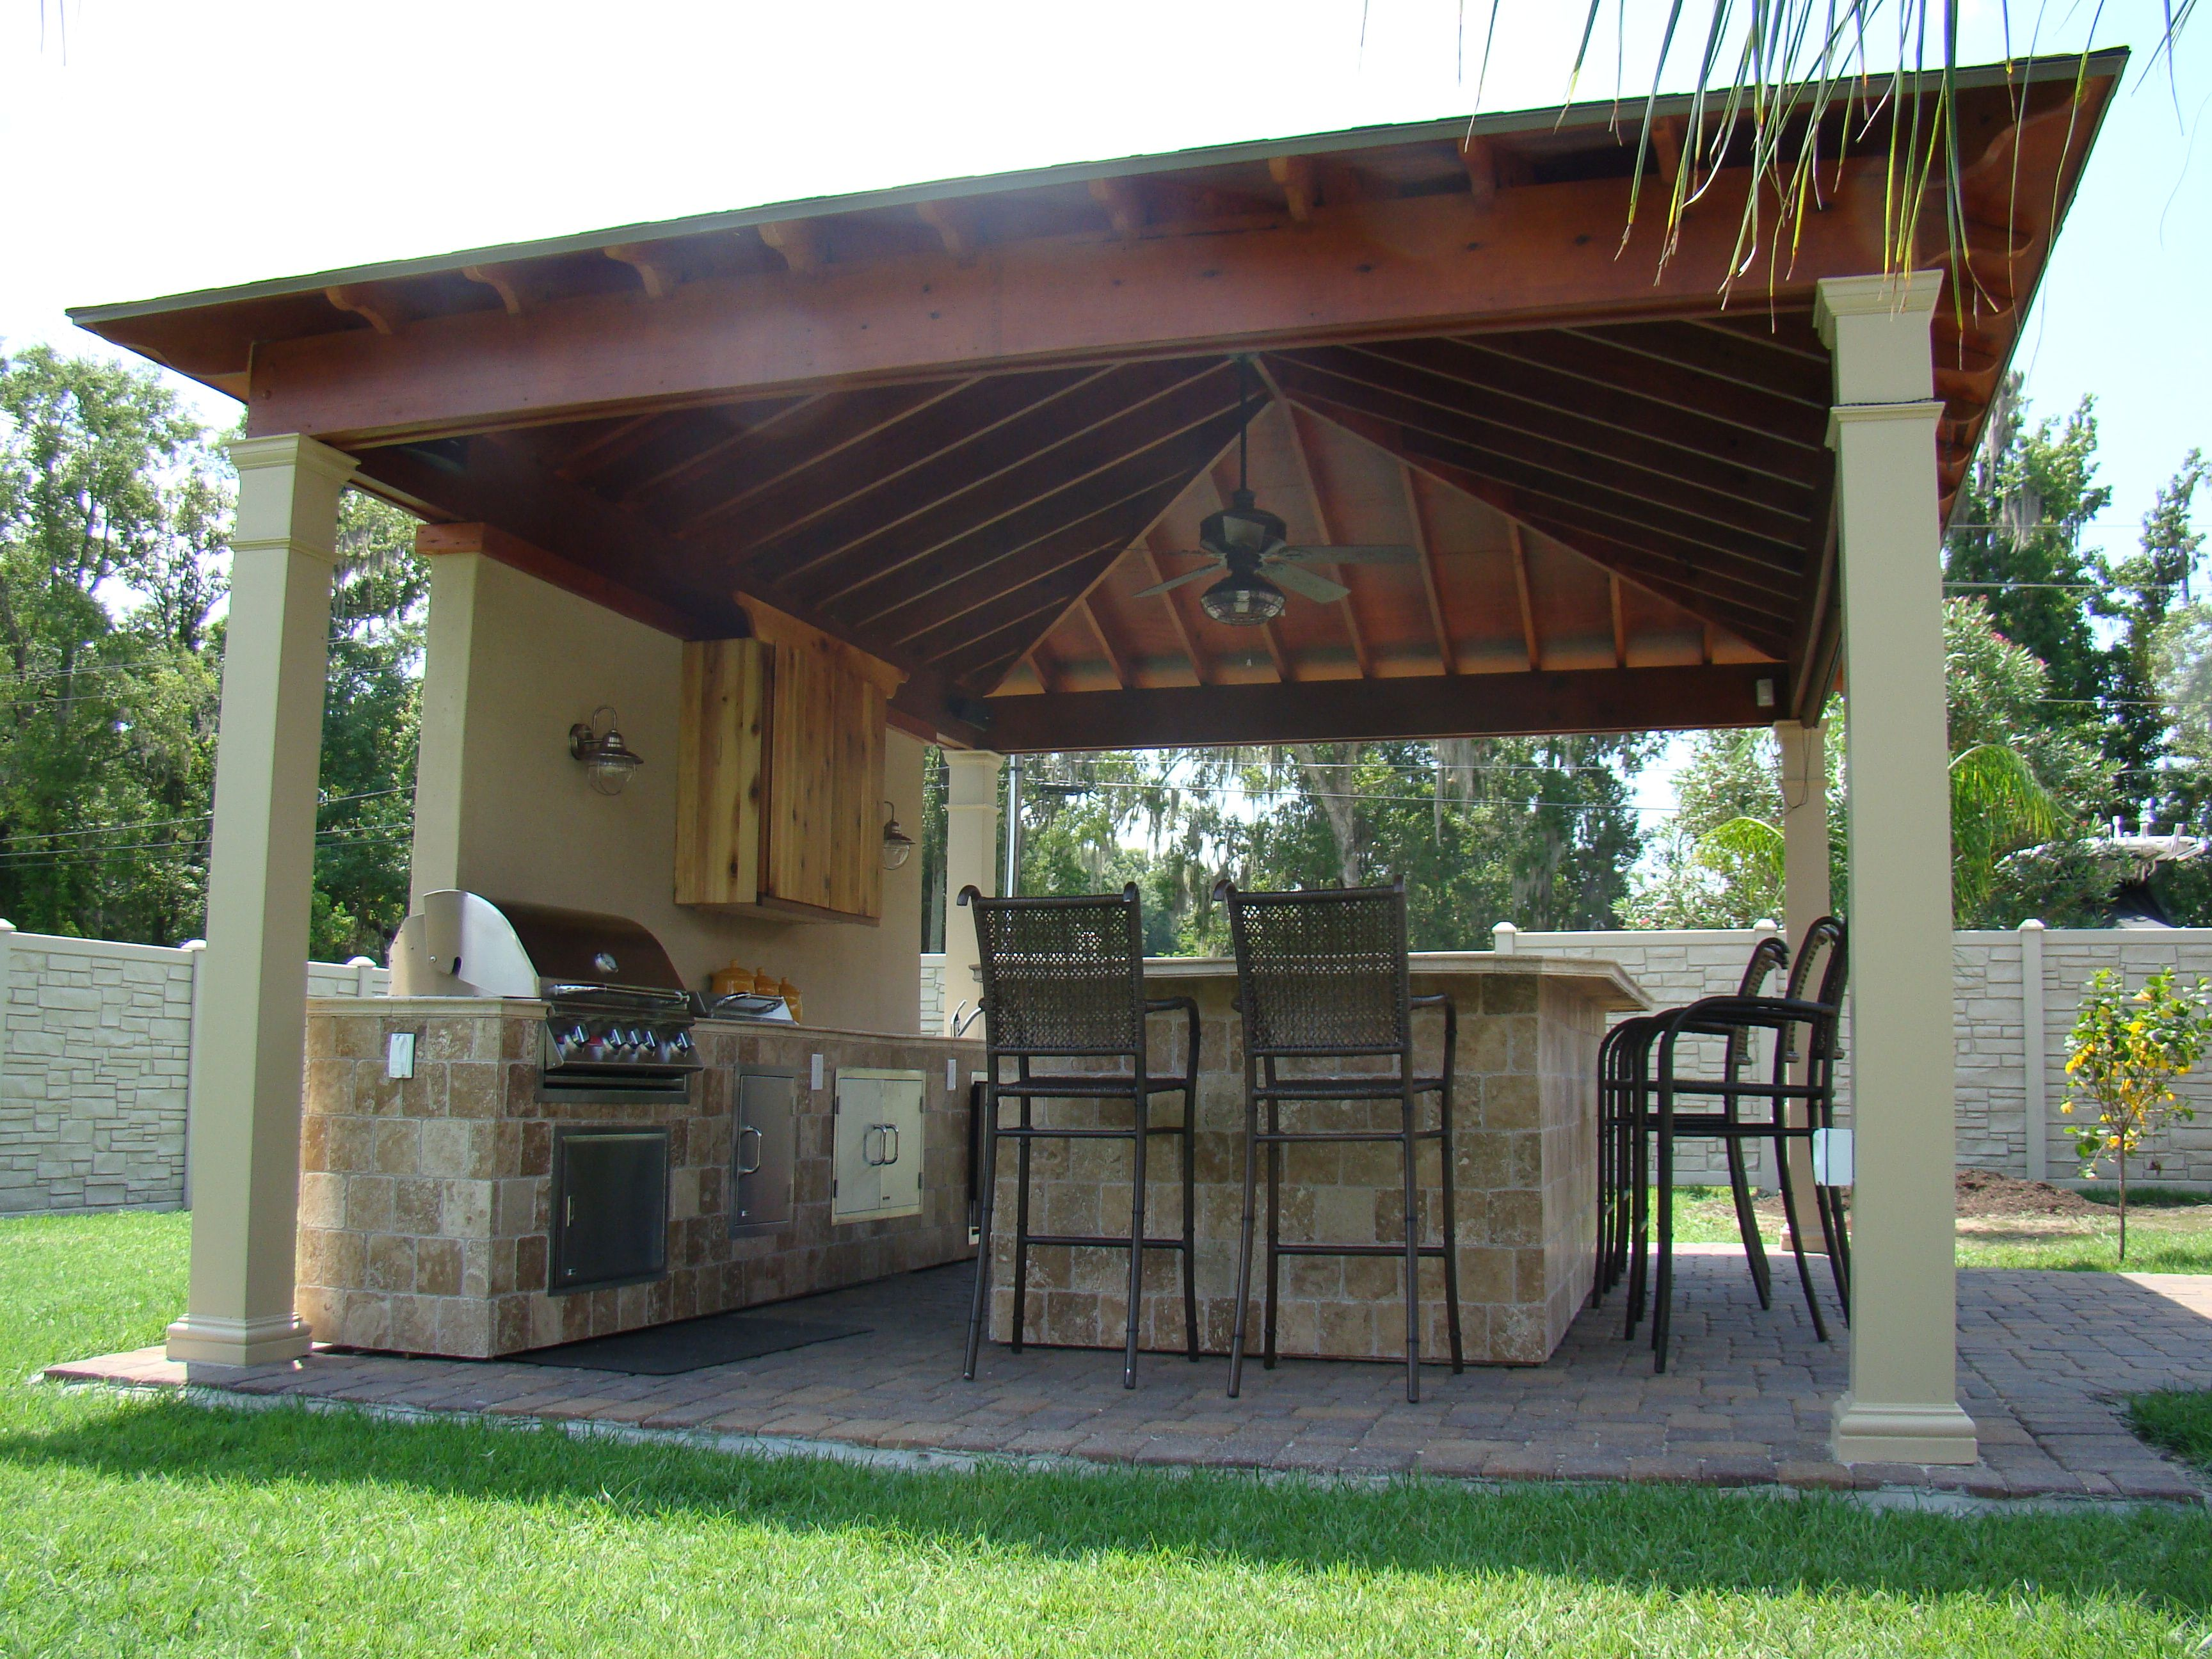 New Orleans Outdoor Kitchens Contractor Build Outdoor Kitchen Outdoor Kitchen Plans Outdoor Kitchen